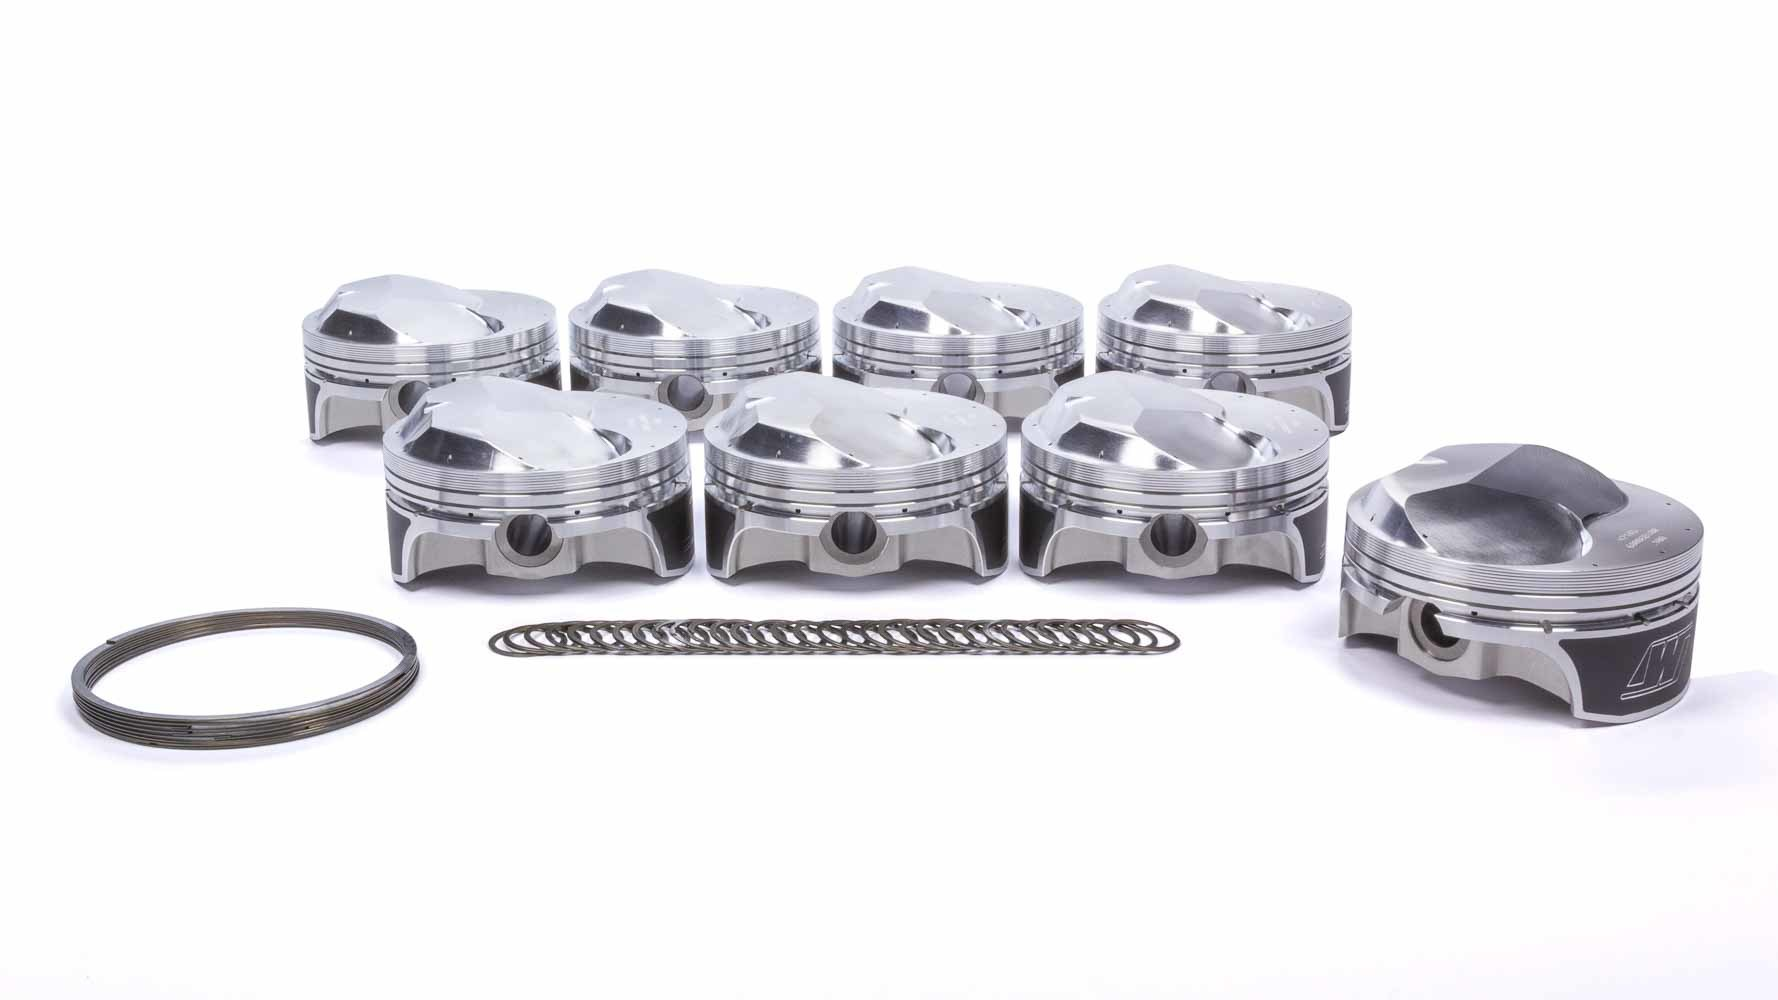 Wiseco K0006B100 Piston and Ring, Quick 16, Forged, 4.600 in Bore, 0.043 x 0.043 x 3 mm Ring Grooves, Plus 42 cc, Big Block Chevy, Set of 8